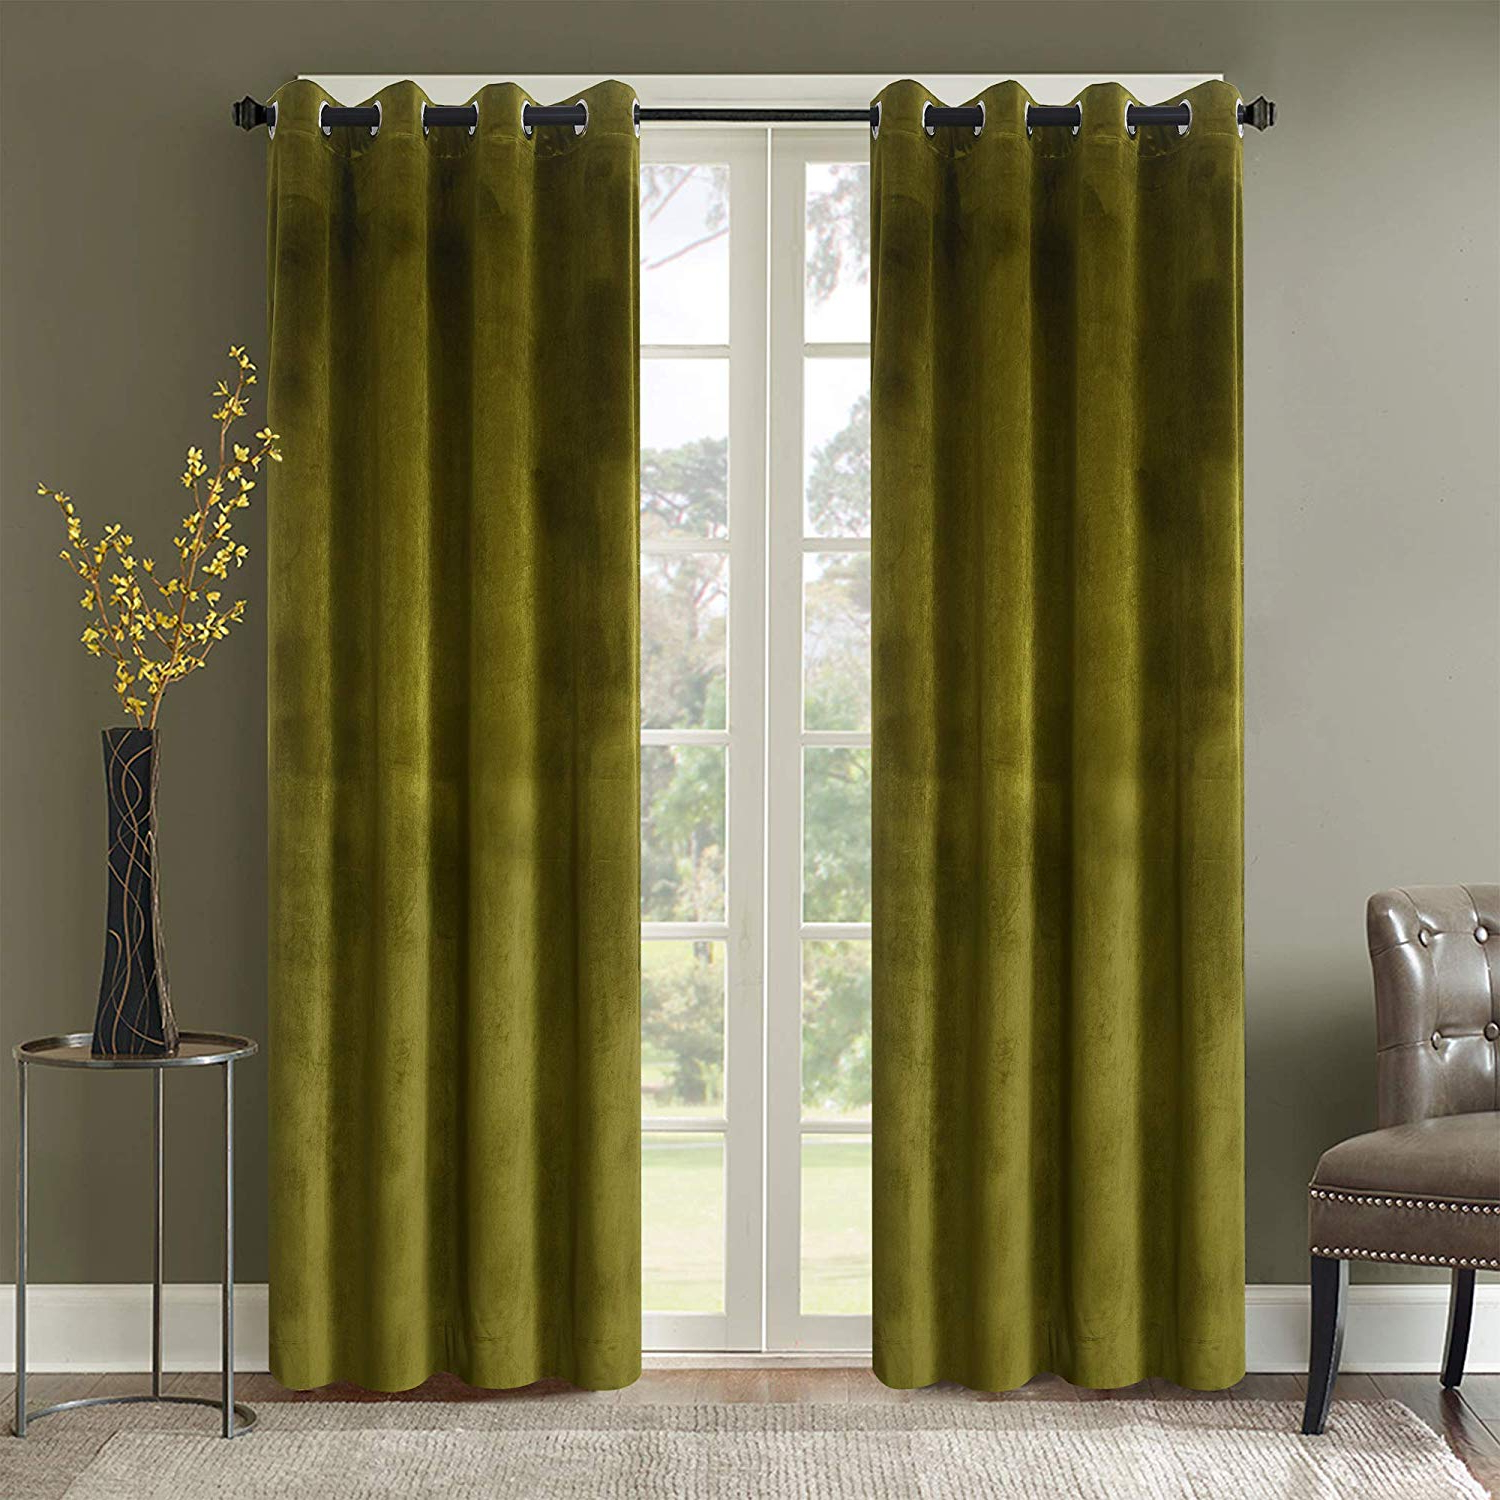 Well Known Roslyn Blackout Soft Luxury Velvet Olive Green Curtains Panels For Bedroom – Window Treatment Thermal Insulated Solid Grommet Blackout Drapes For Regarding Velvet Dream Silver Curtain Panel Pairs (View 18 of 20)